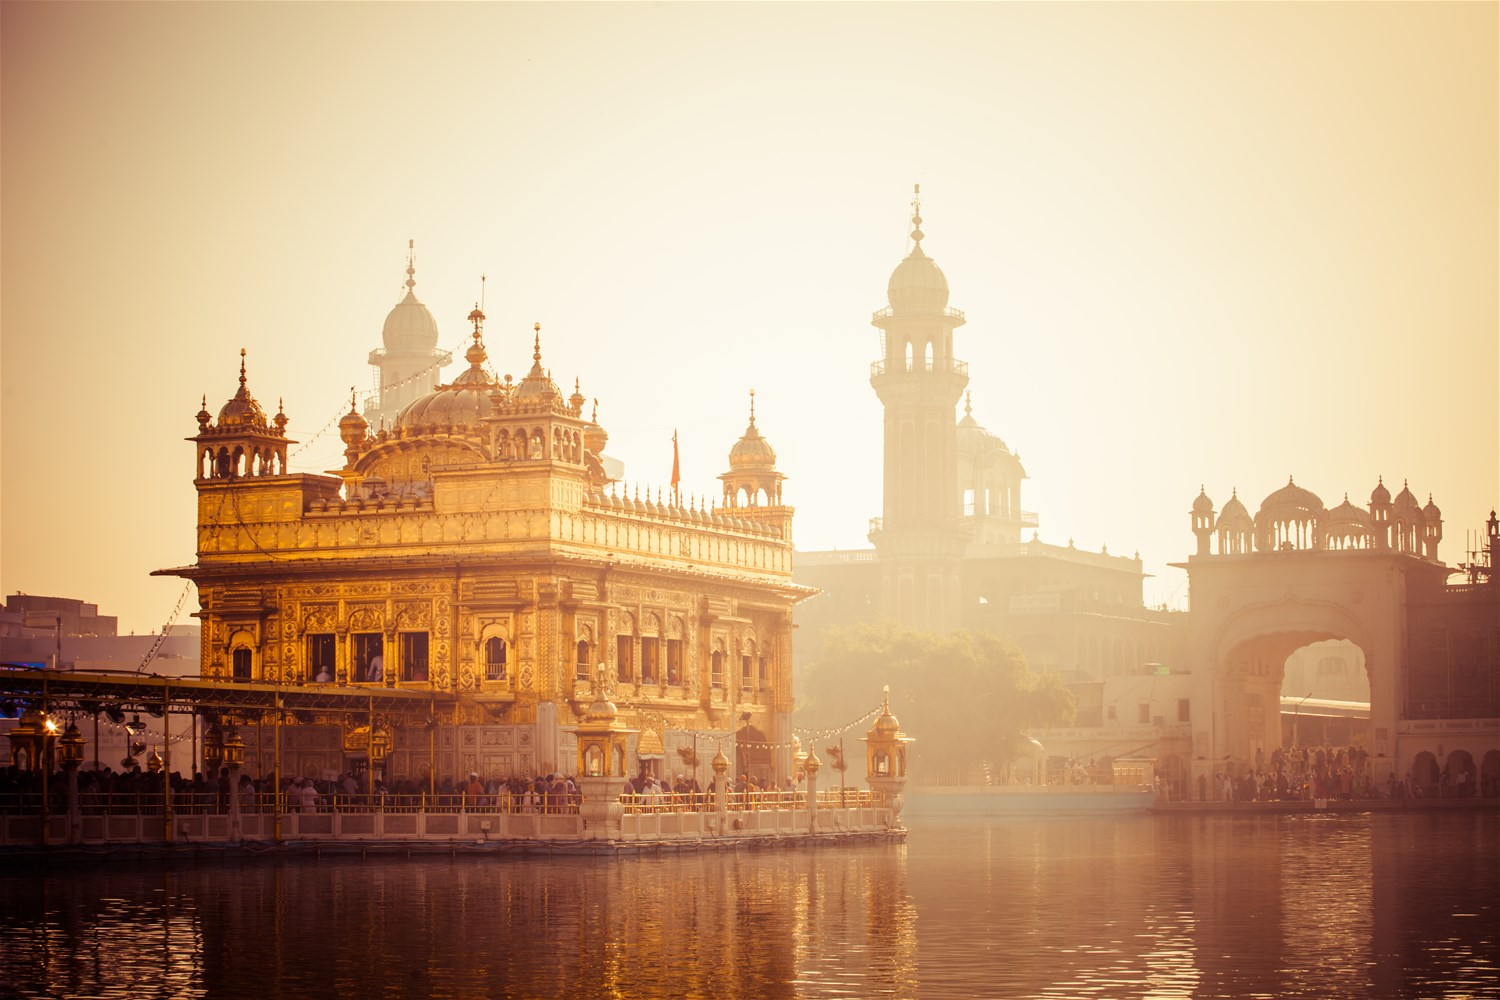 The Golden Temple Amritsar - the jewel in India's north